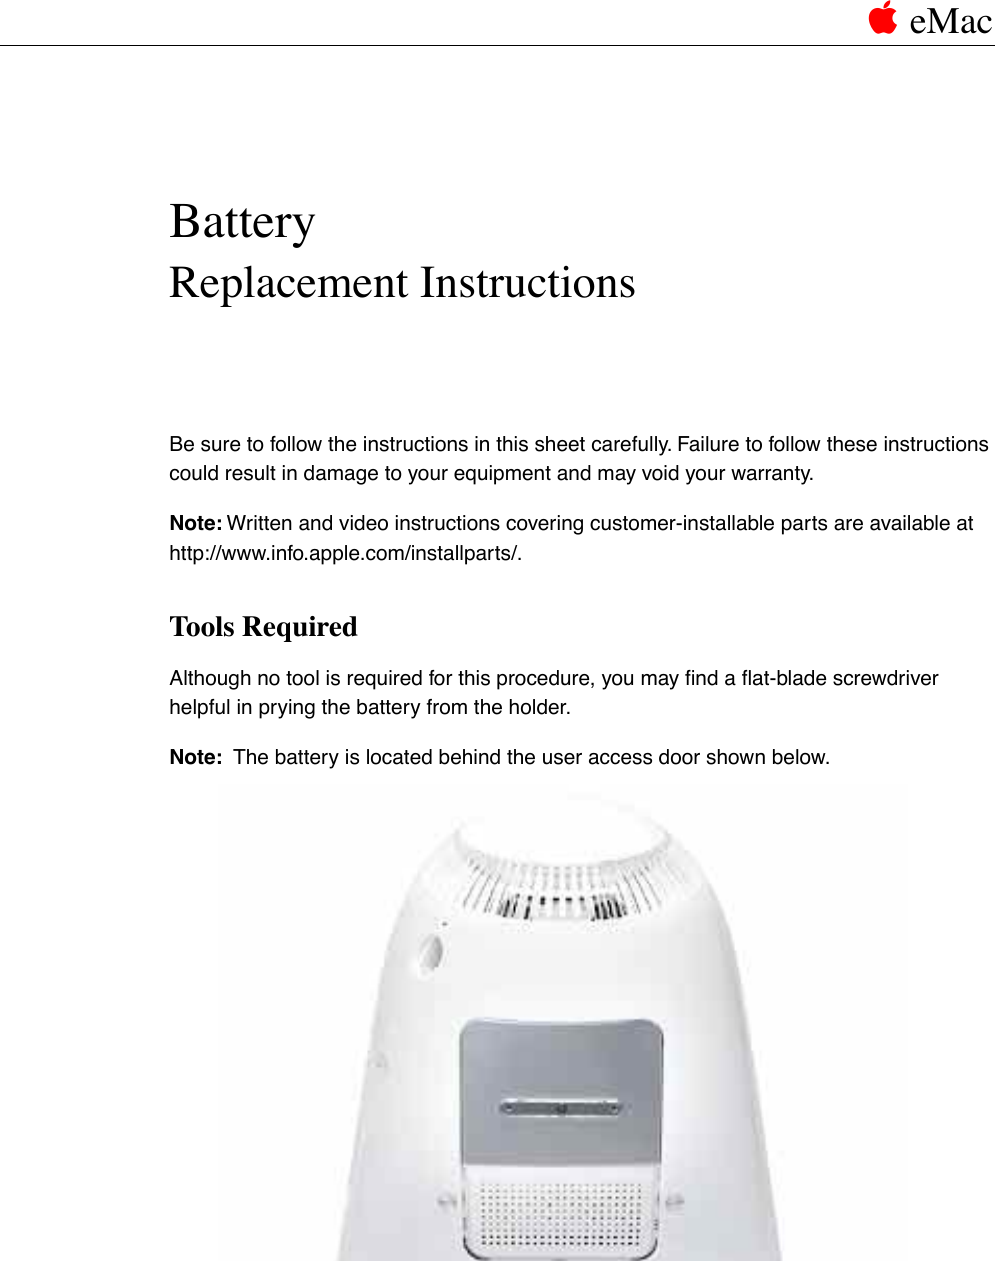 apple emac cip battery user manual e mac replacement instructions rh usermanual wiki Apple iMac Apple Laptops